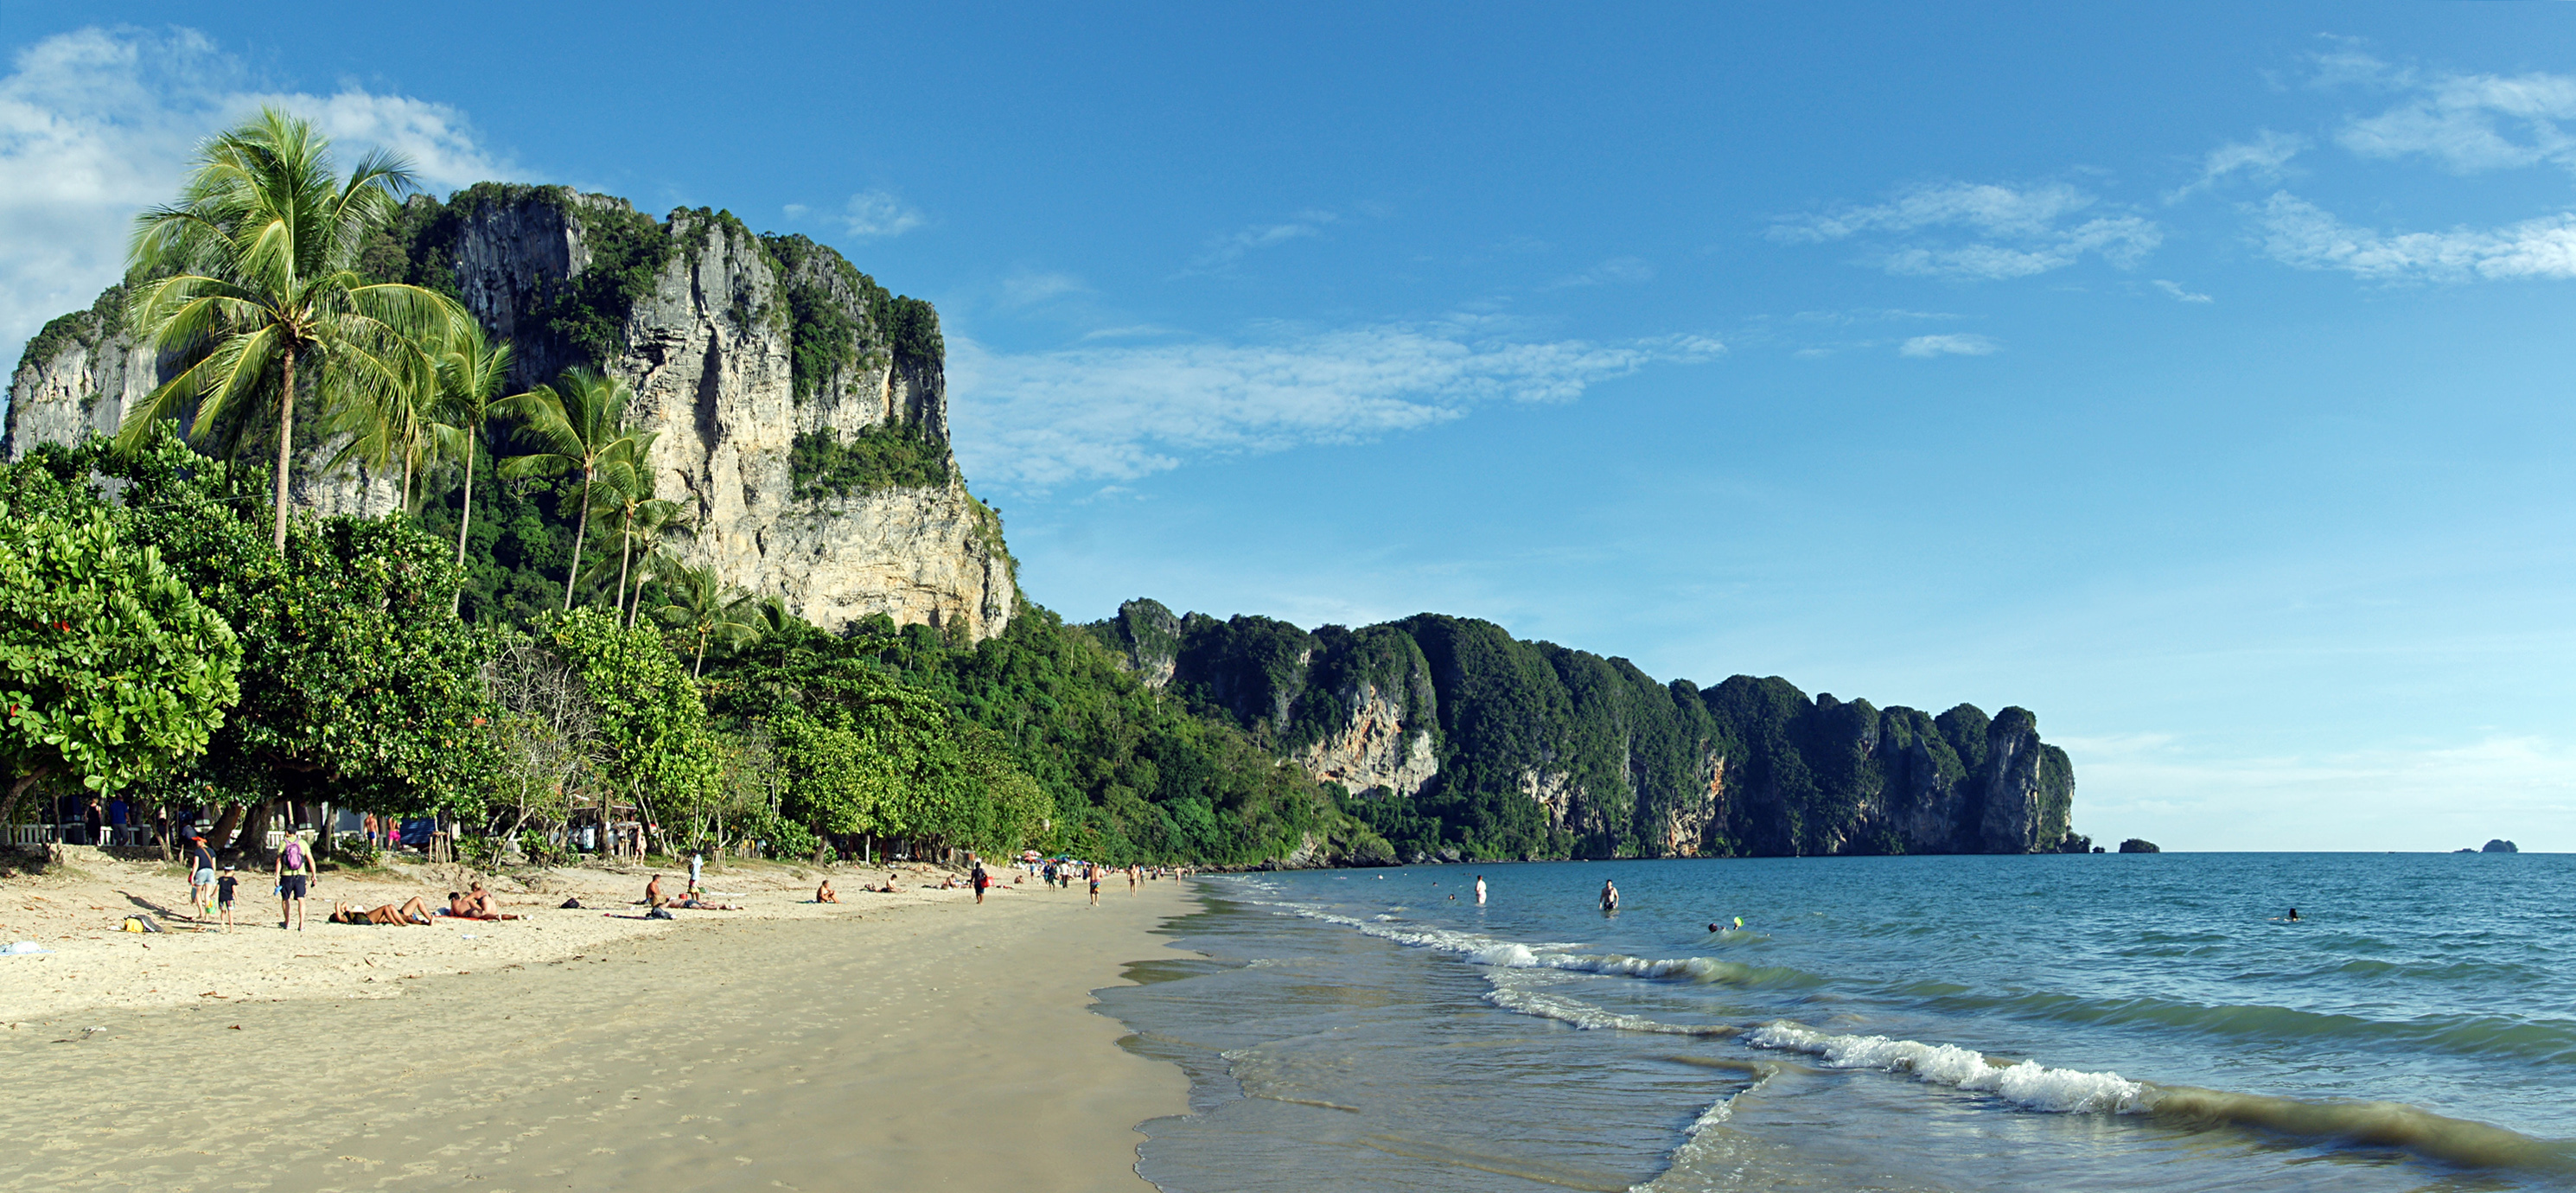 File:Ao Nang beach panorama 3.jpg - Wikimedia Commons